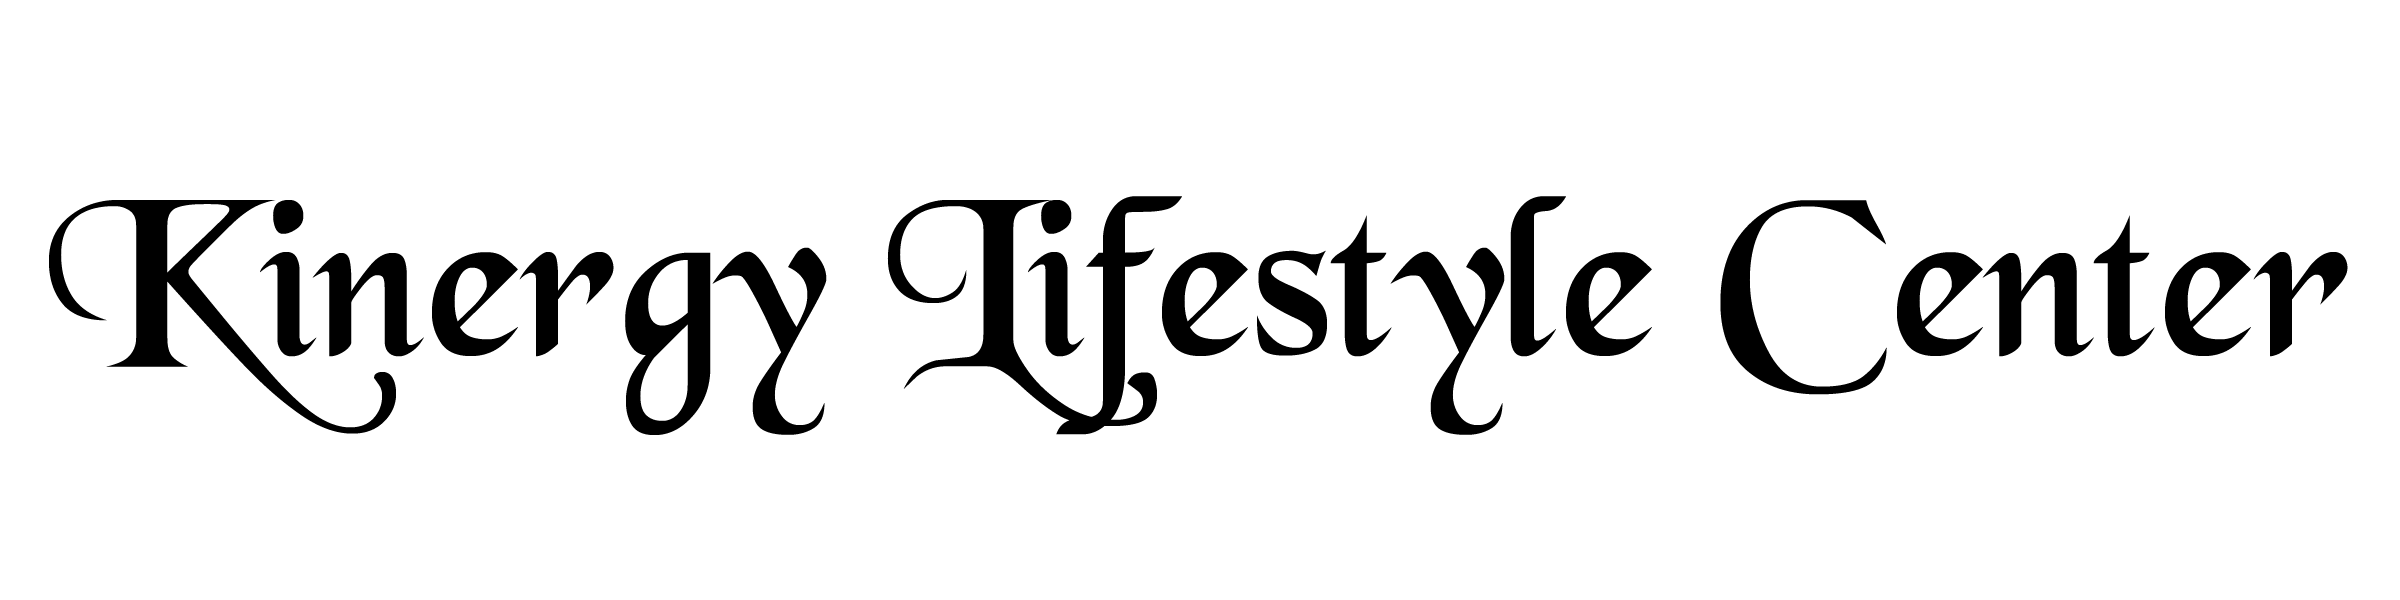 Kinergy PNG horizontal text in black.png